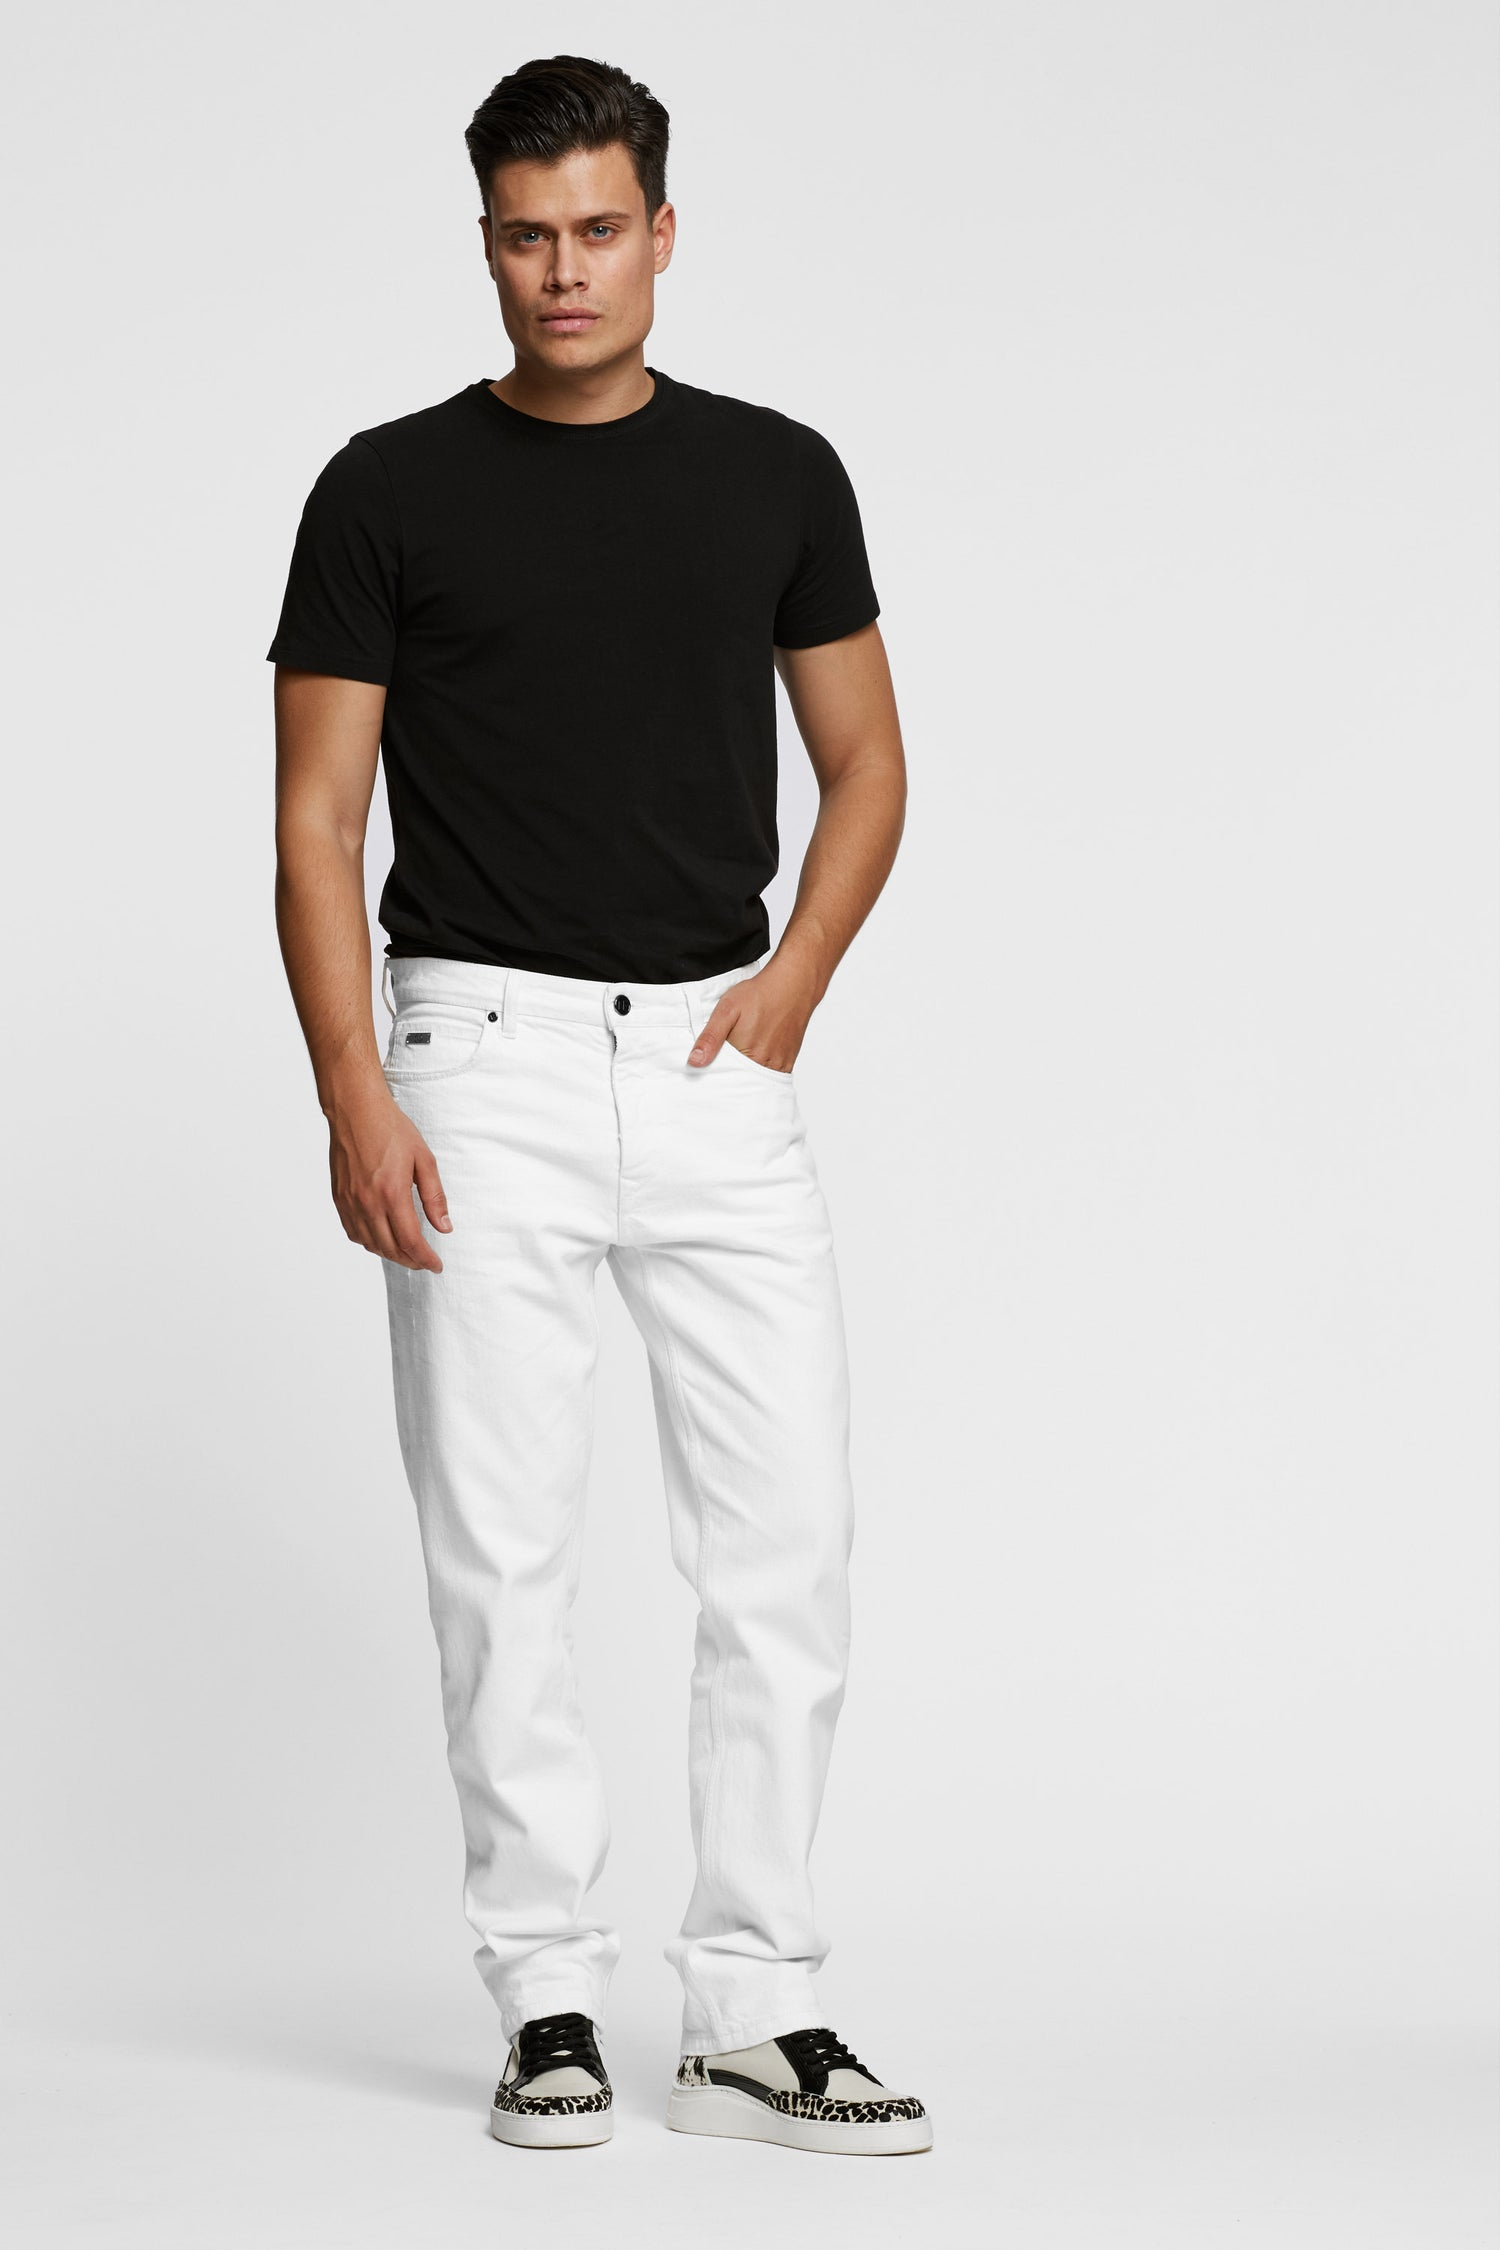 https://cdn.shopify.com/s/files/1/2973/0680/files/OVERSIZED_WHITE_DENIM_JEAN.mp4?1318584067511151134